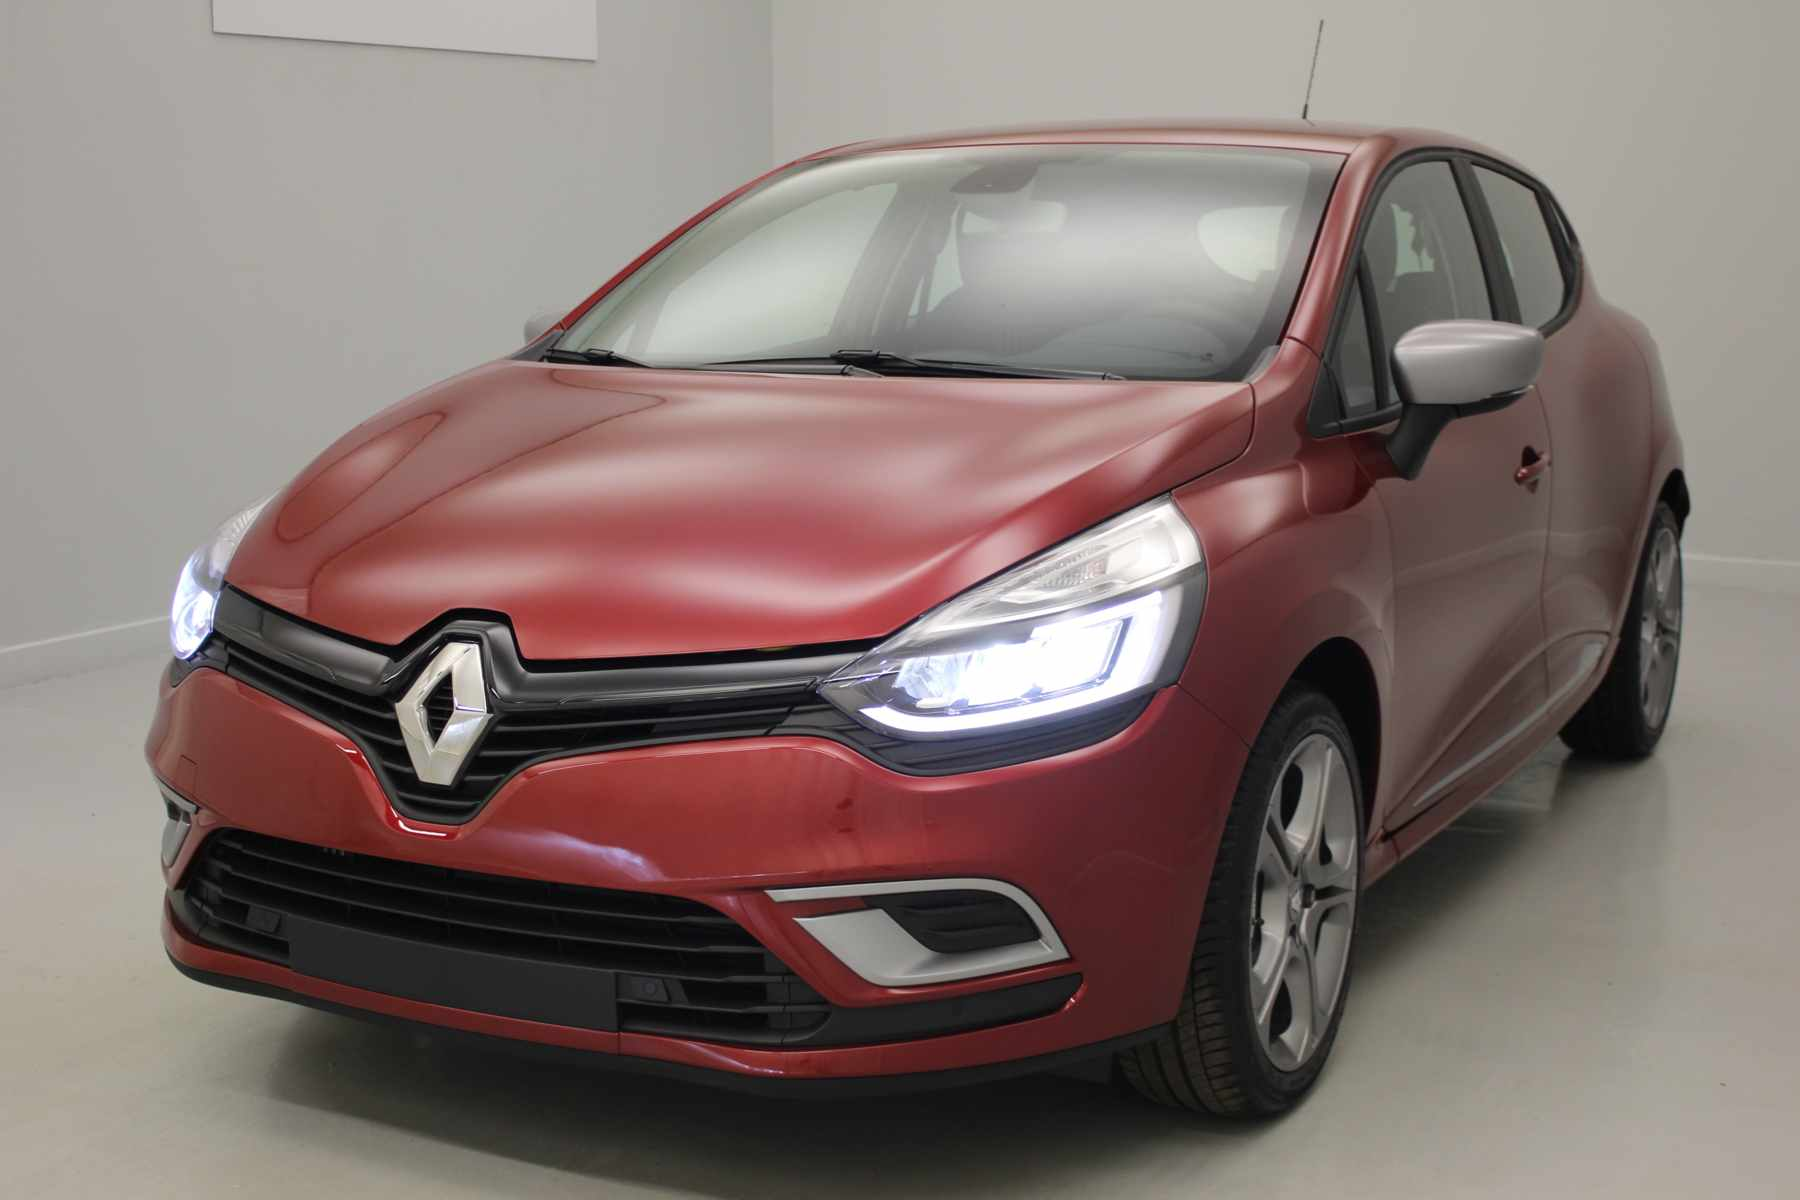 RENAULT Clio IV Nouvelle Clio TCe 90 Energy Intens Rouge Intense + Full Pack GT-Line + Roue de secours + Pack Techno avec options